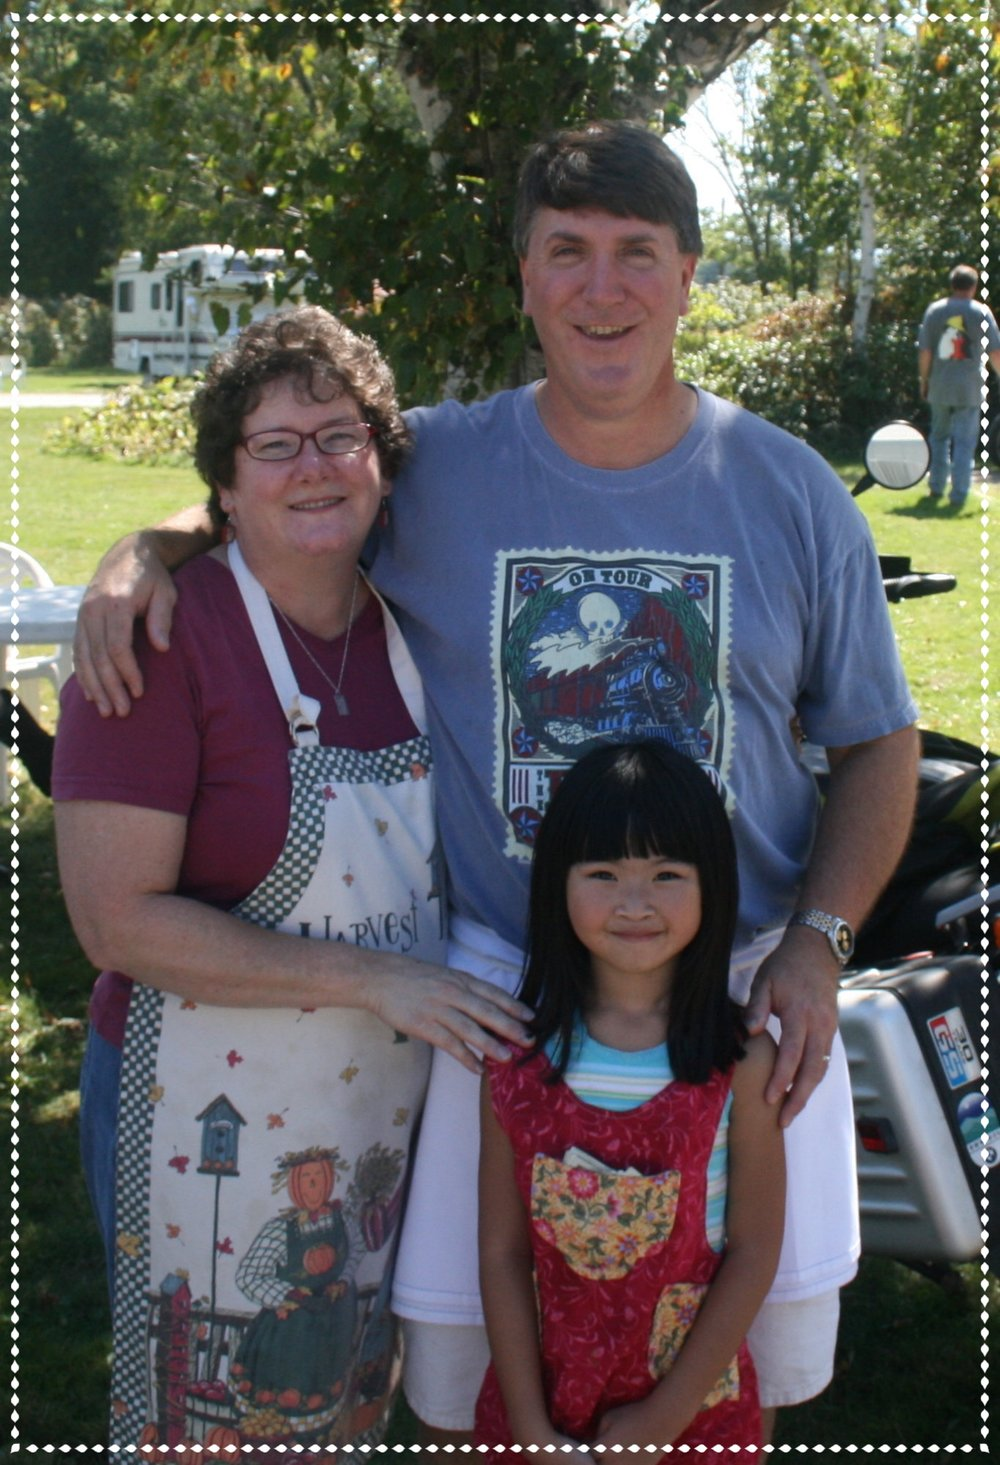 At the time, - Jeff and I were childless and it didn't seem possible that we could be full-time innkeepers and parents, too. Through a series of chance encounters and events, we were lead to parenting through adoption. In the Spring of 2005, we were holding a beautiful baby girl we named Alexis. The missing piece clicked into place and we learned to juggle innkeeping while raising our daughter.Alexis is now nearly 14-years old and she will be starting high school in the Fall. Time has truly flown! While there have been many challenges there have been so many more joyful moments.So often my friend's words have come to mind -